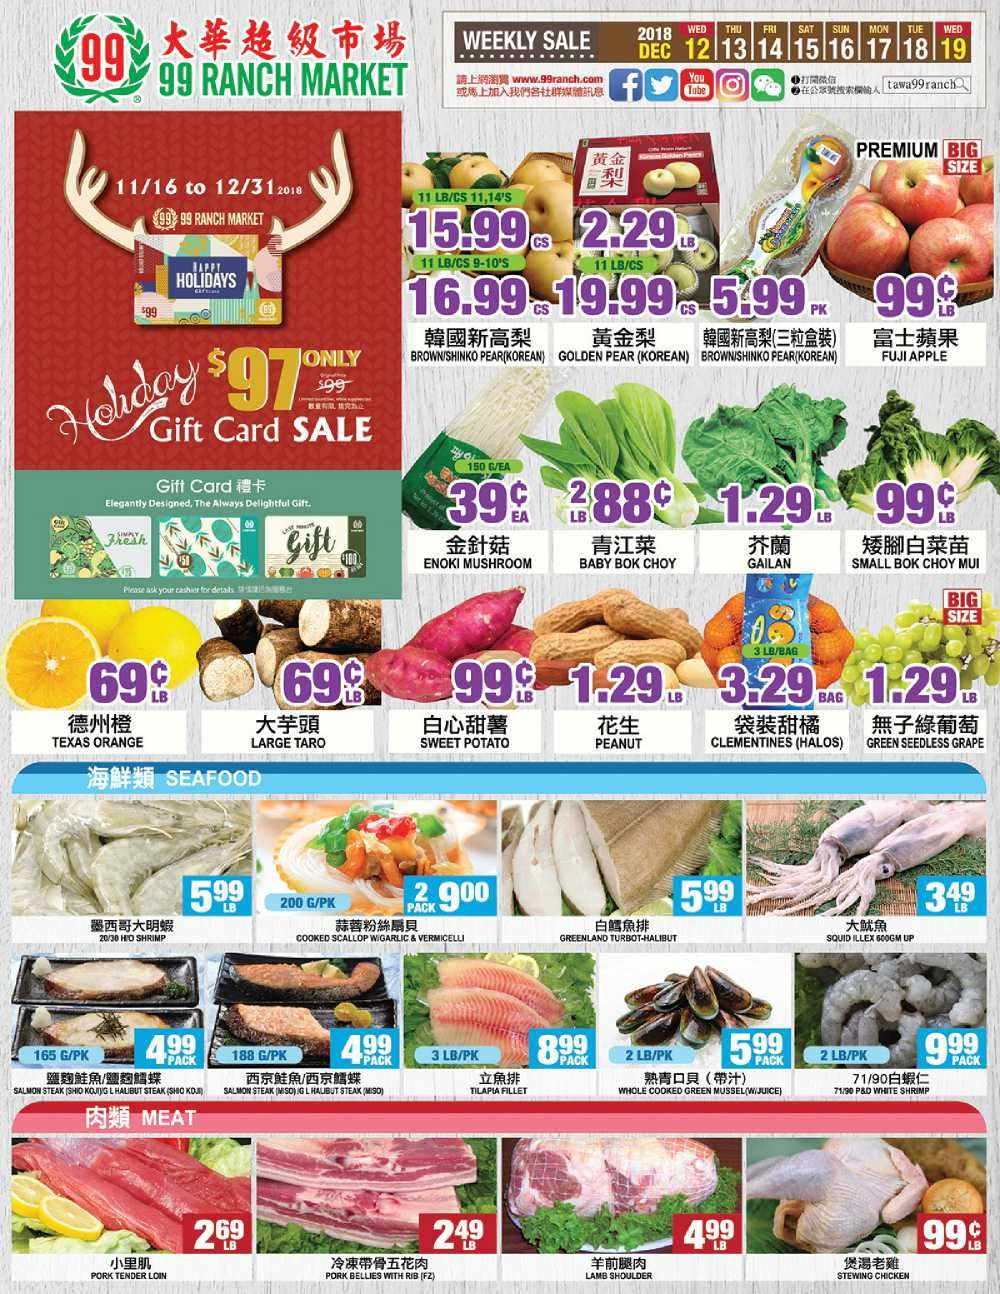 99 ranch market weekly special flyer january 16 23 2019